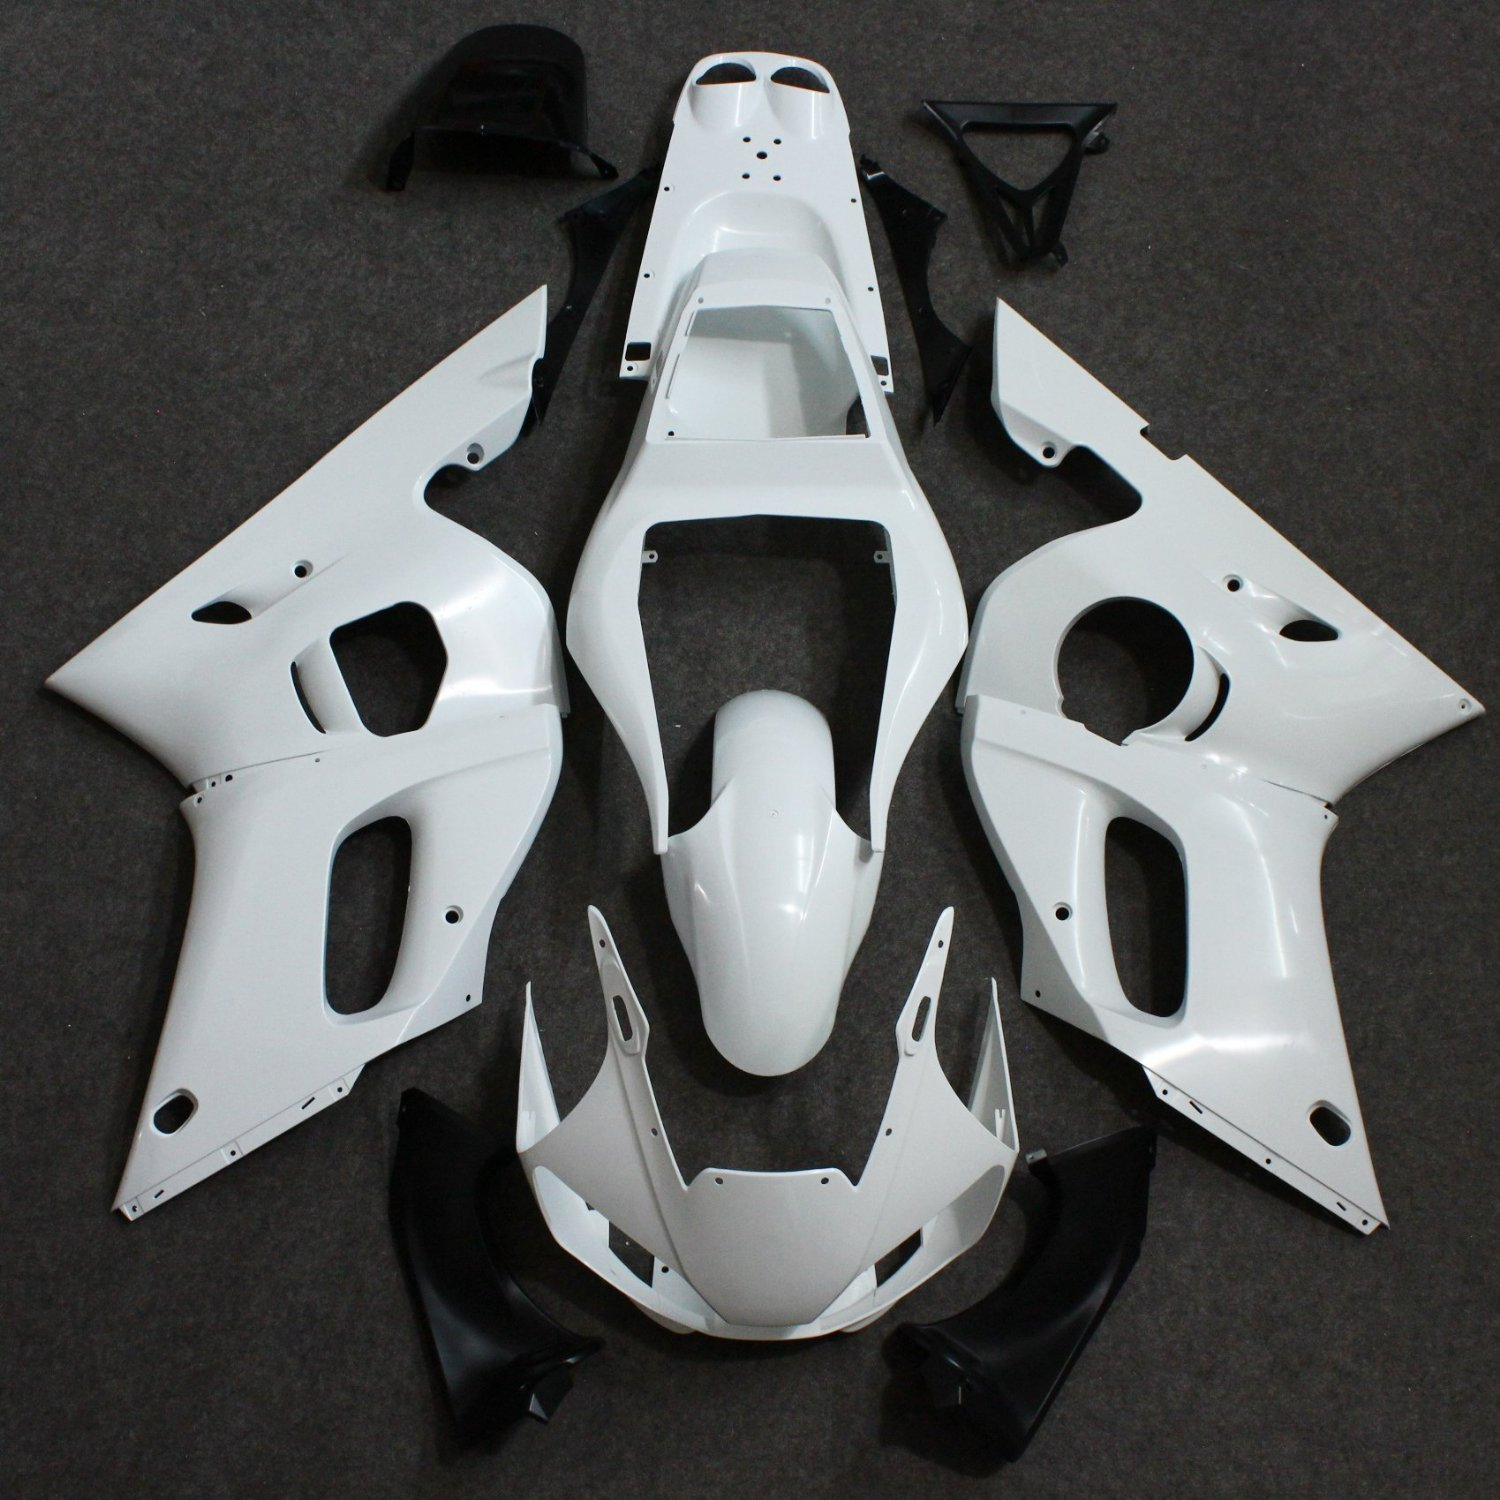 Motorcycle Unpainted Fairing Kit for Yamaha YZF R6 YZFR6 1998-2002 2001 2000 1999 YZF-R6 98-02 Bodywork Fairings Injection Mold mfs motor front rear brake discs rotor for yamaha yzfr1 1998 1999 2000 2001 yzfr6 1998 1999 2000 2001 2002 yzf r6 98 02 gold